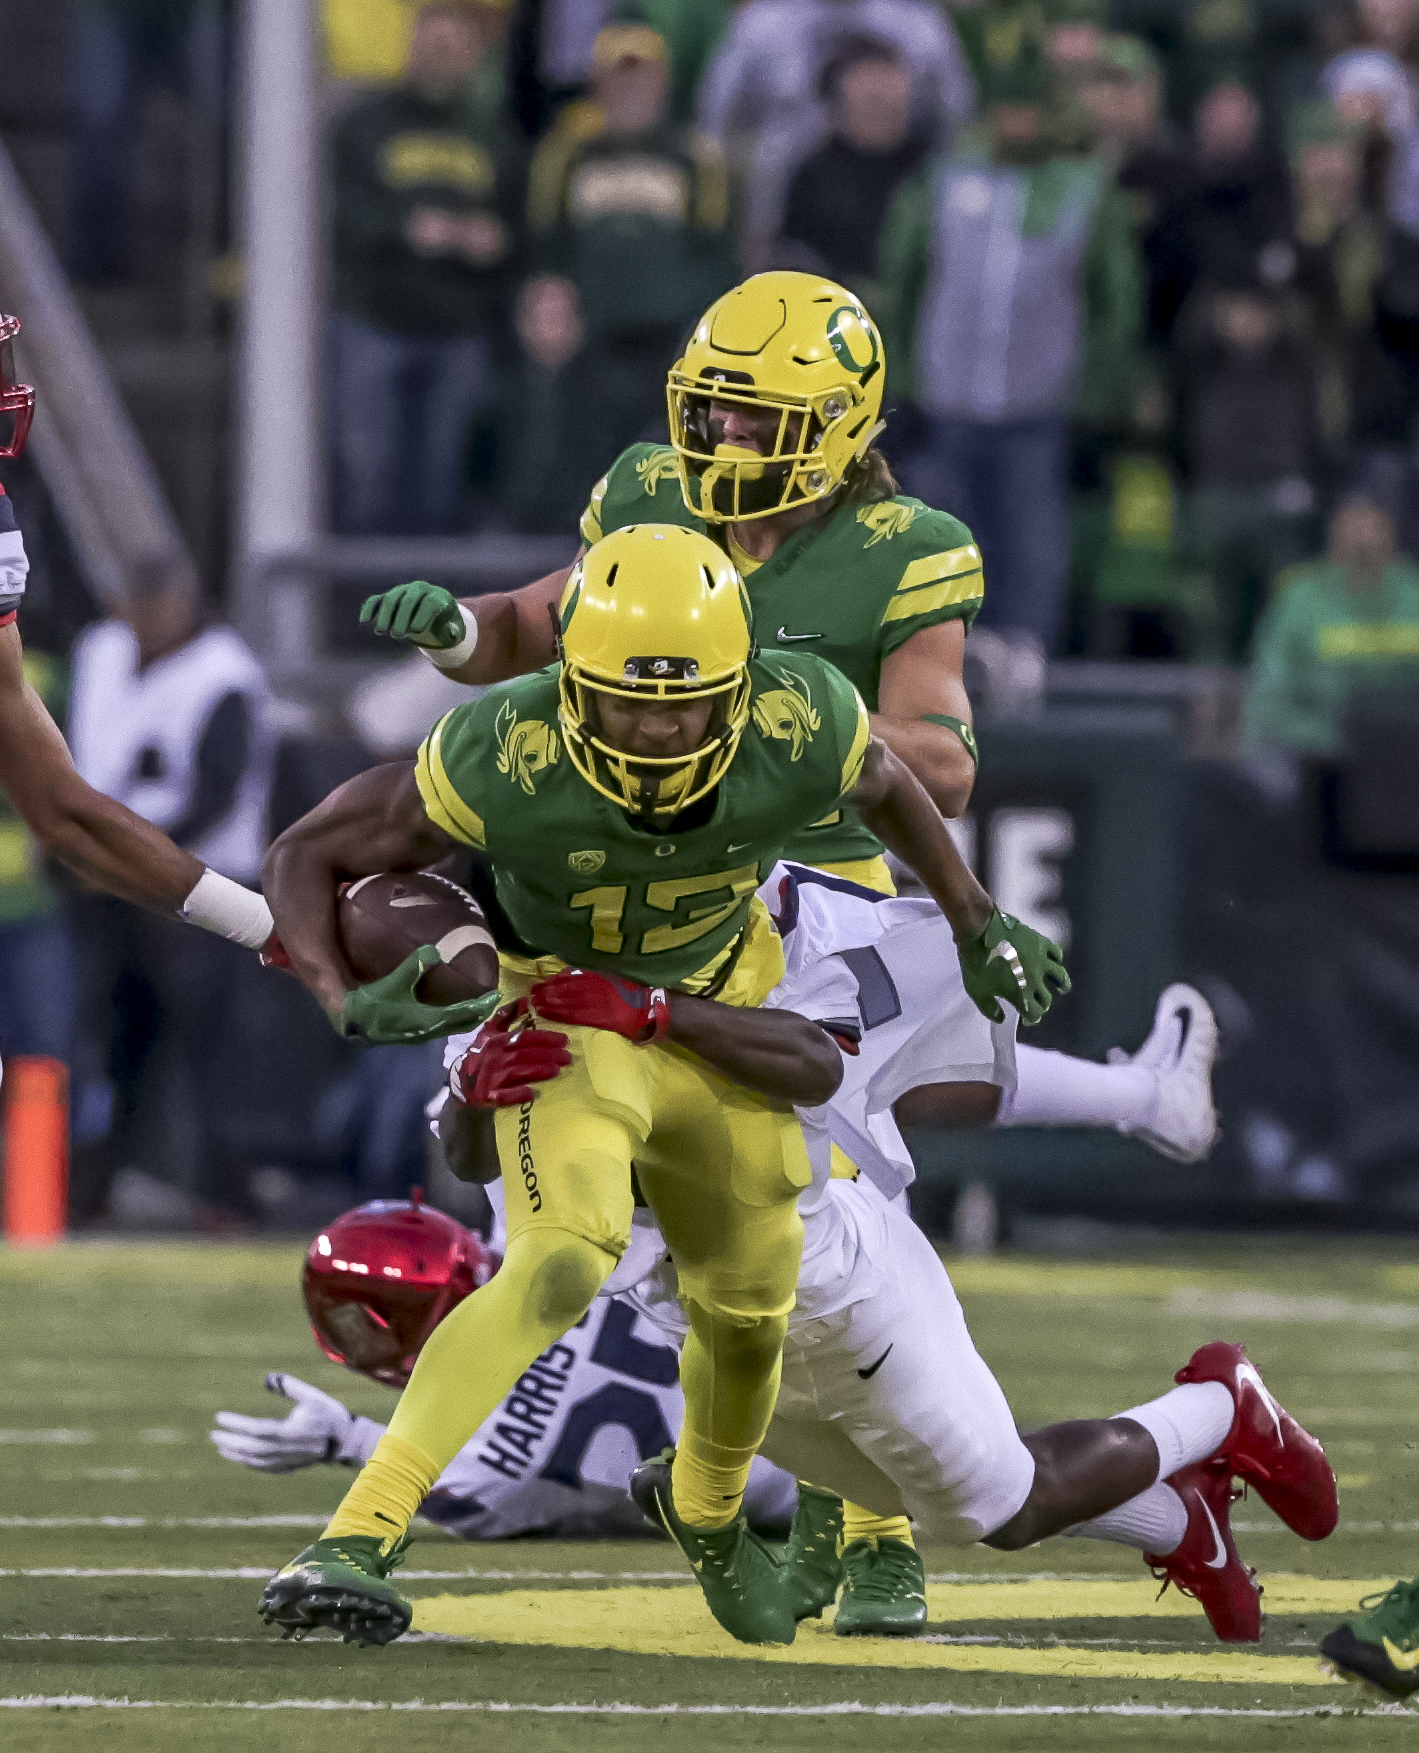 Oregon wide receiver Dillon Mitchell (#13) charges ahead to gain yardage. The Oregon Ducks lead the Arizona Wildcats 28 to 21 at the end of the first half at Autzen Stadium on Saturday, November 18, 2017. Photo by Ben Lonergan, Oregon News Lab